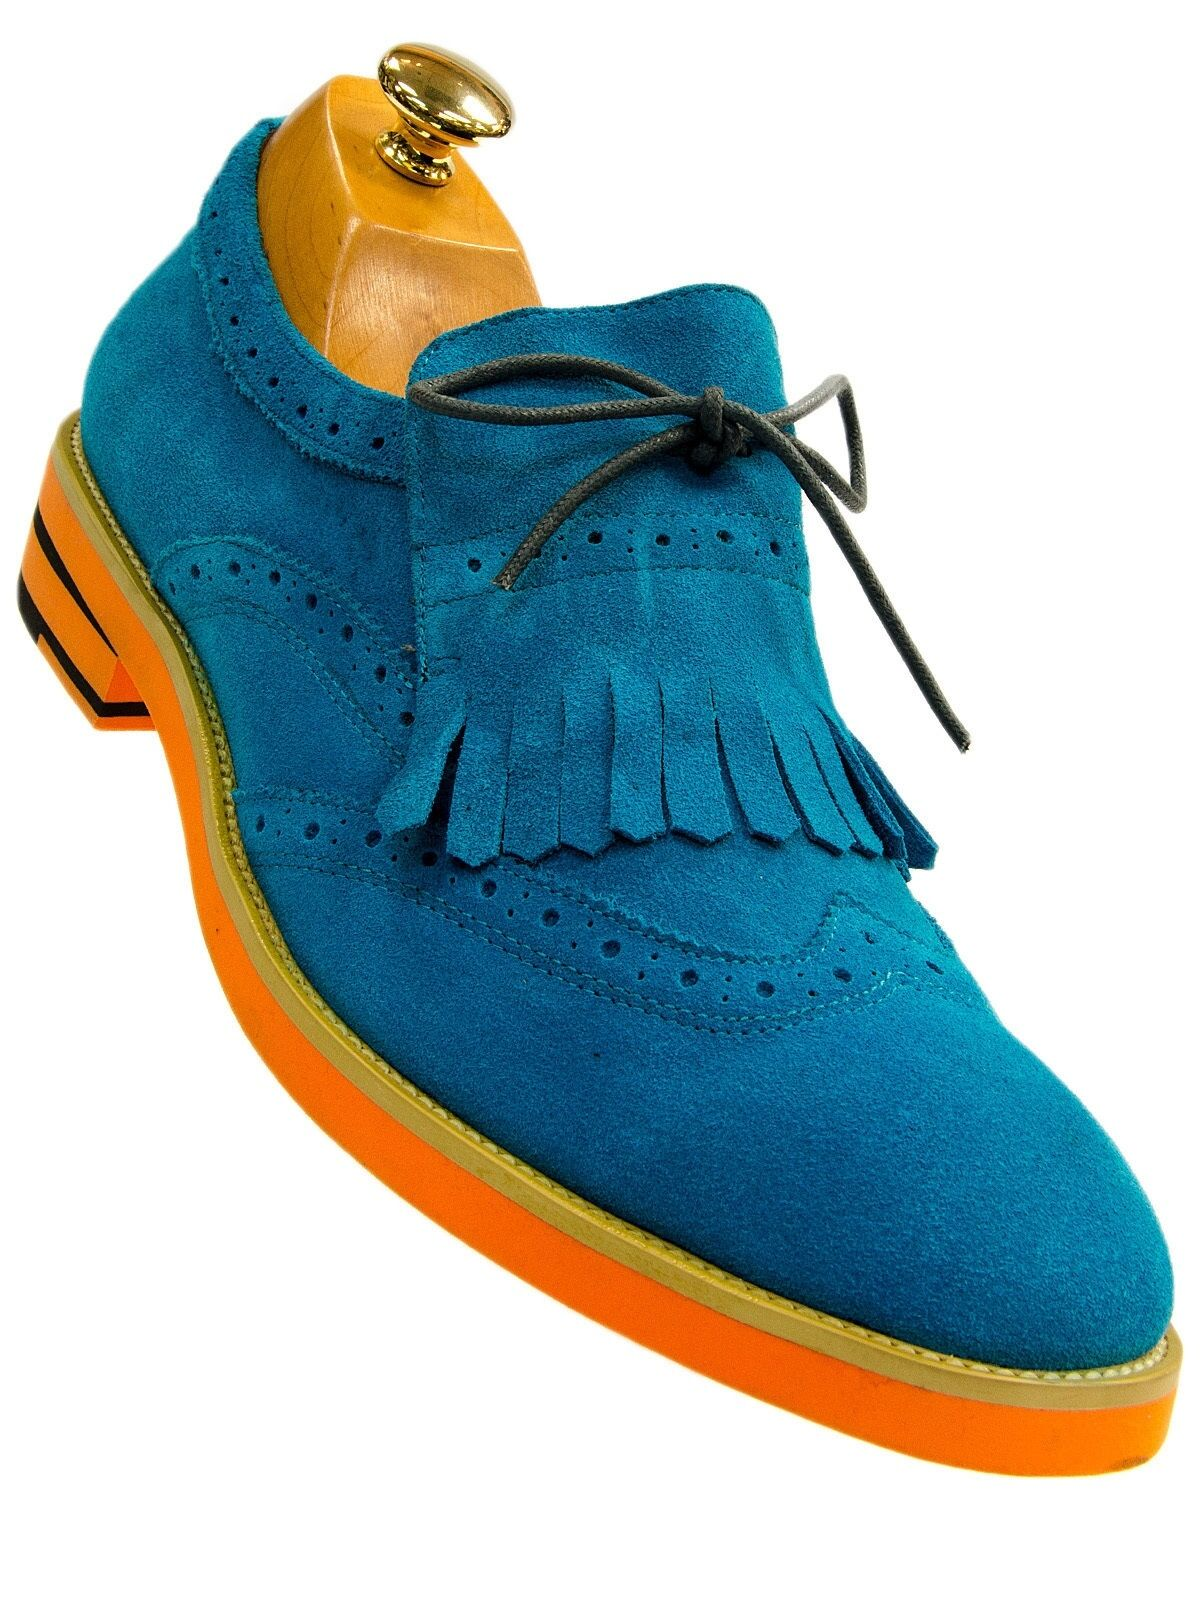 Encore Uomo Bold Blue Bold Uomo Suede Wing Tip Lace Up Dress Casual Party Trending Shoes 7a3548